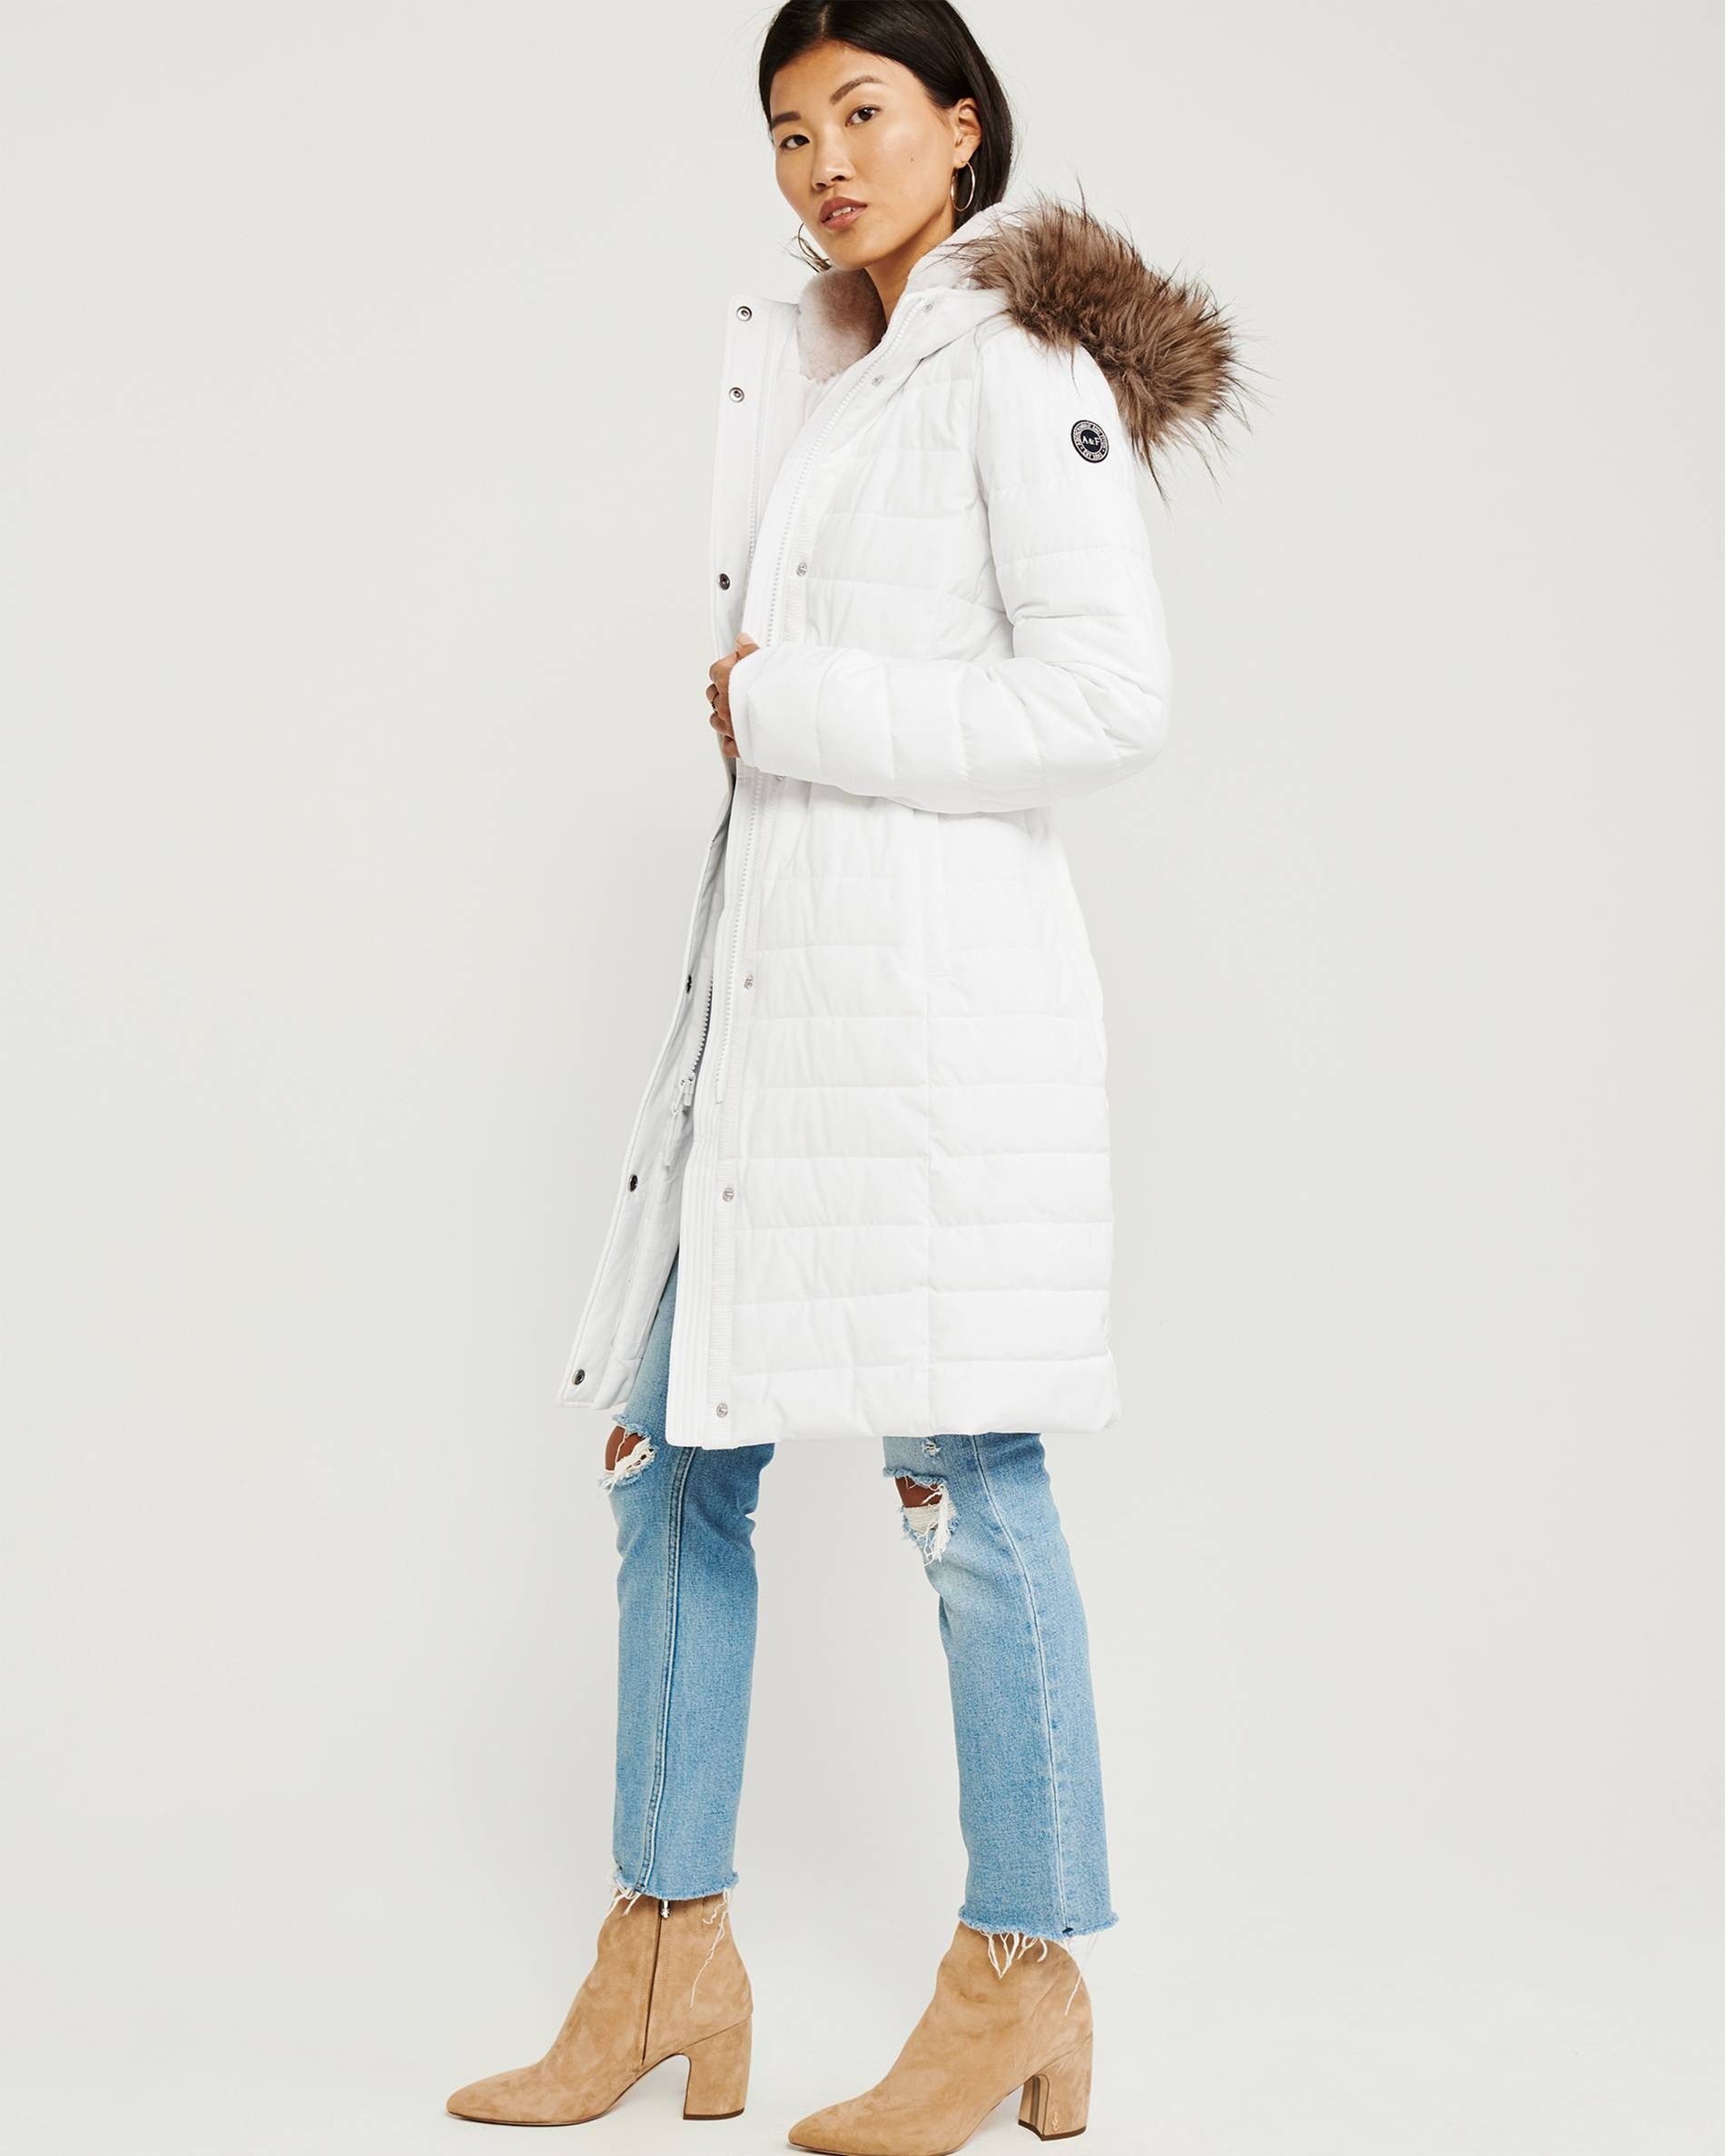 Boots Hats Coats Amp Everything You Need For Winter The